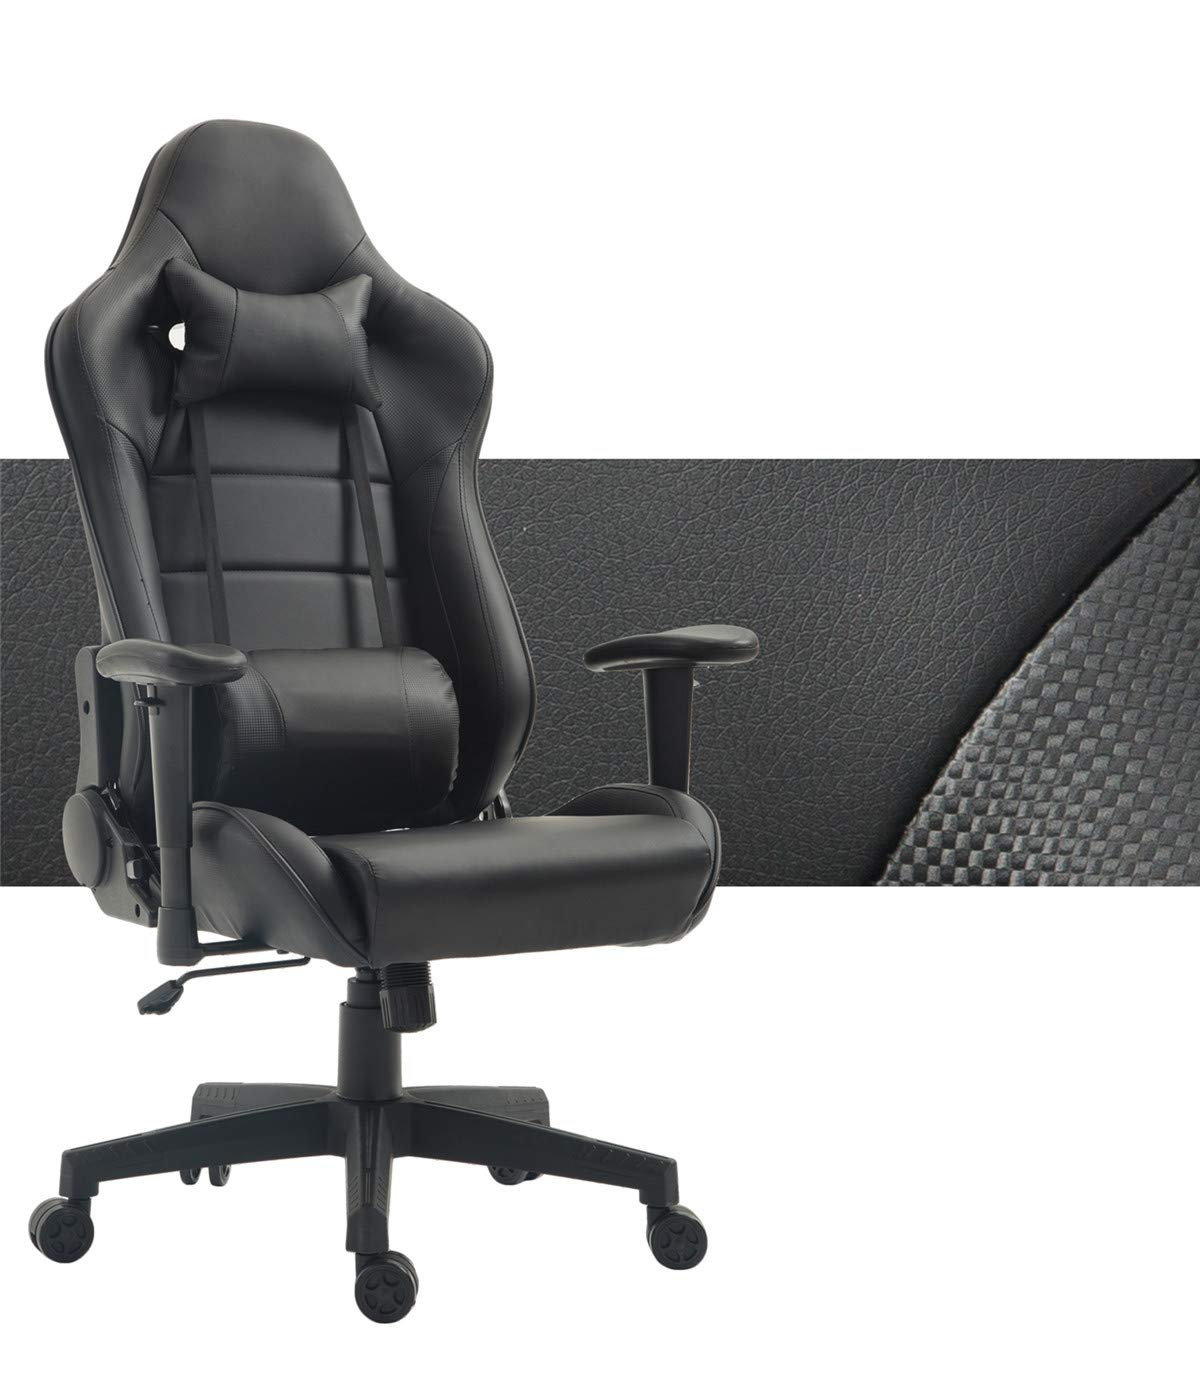 Computer Gaming Chair High Back Game Chair Office Chair PU Leather Desk Chair PC Racing Executive Ergonomic Adjustable Swivel Task Chair with Headrest and Lumbar Support (Black) by WOLF WARRIORS